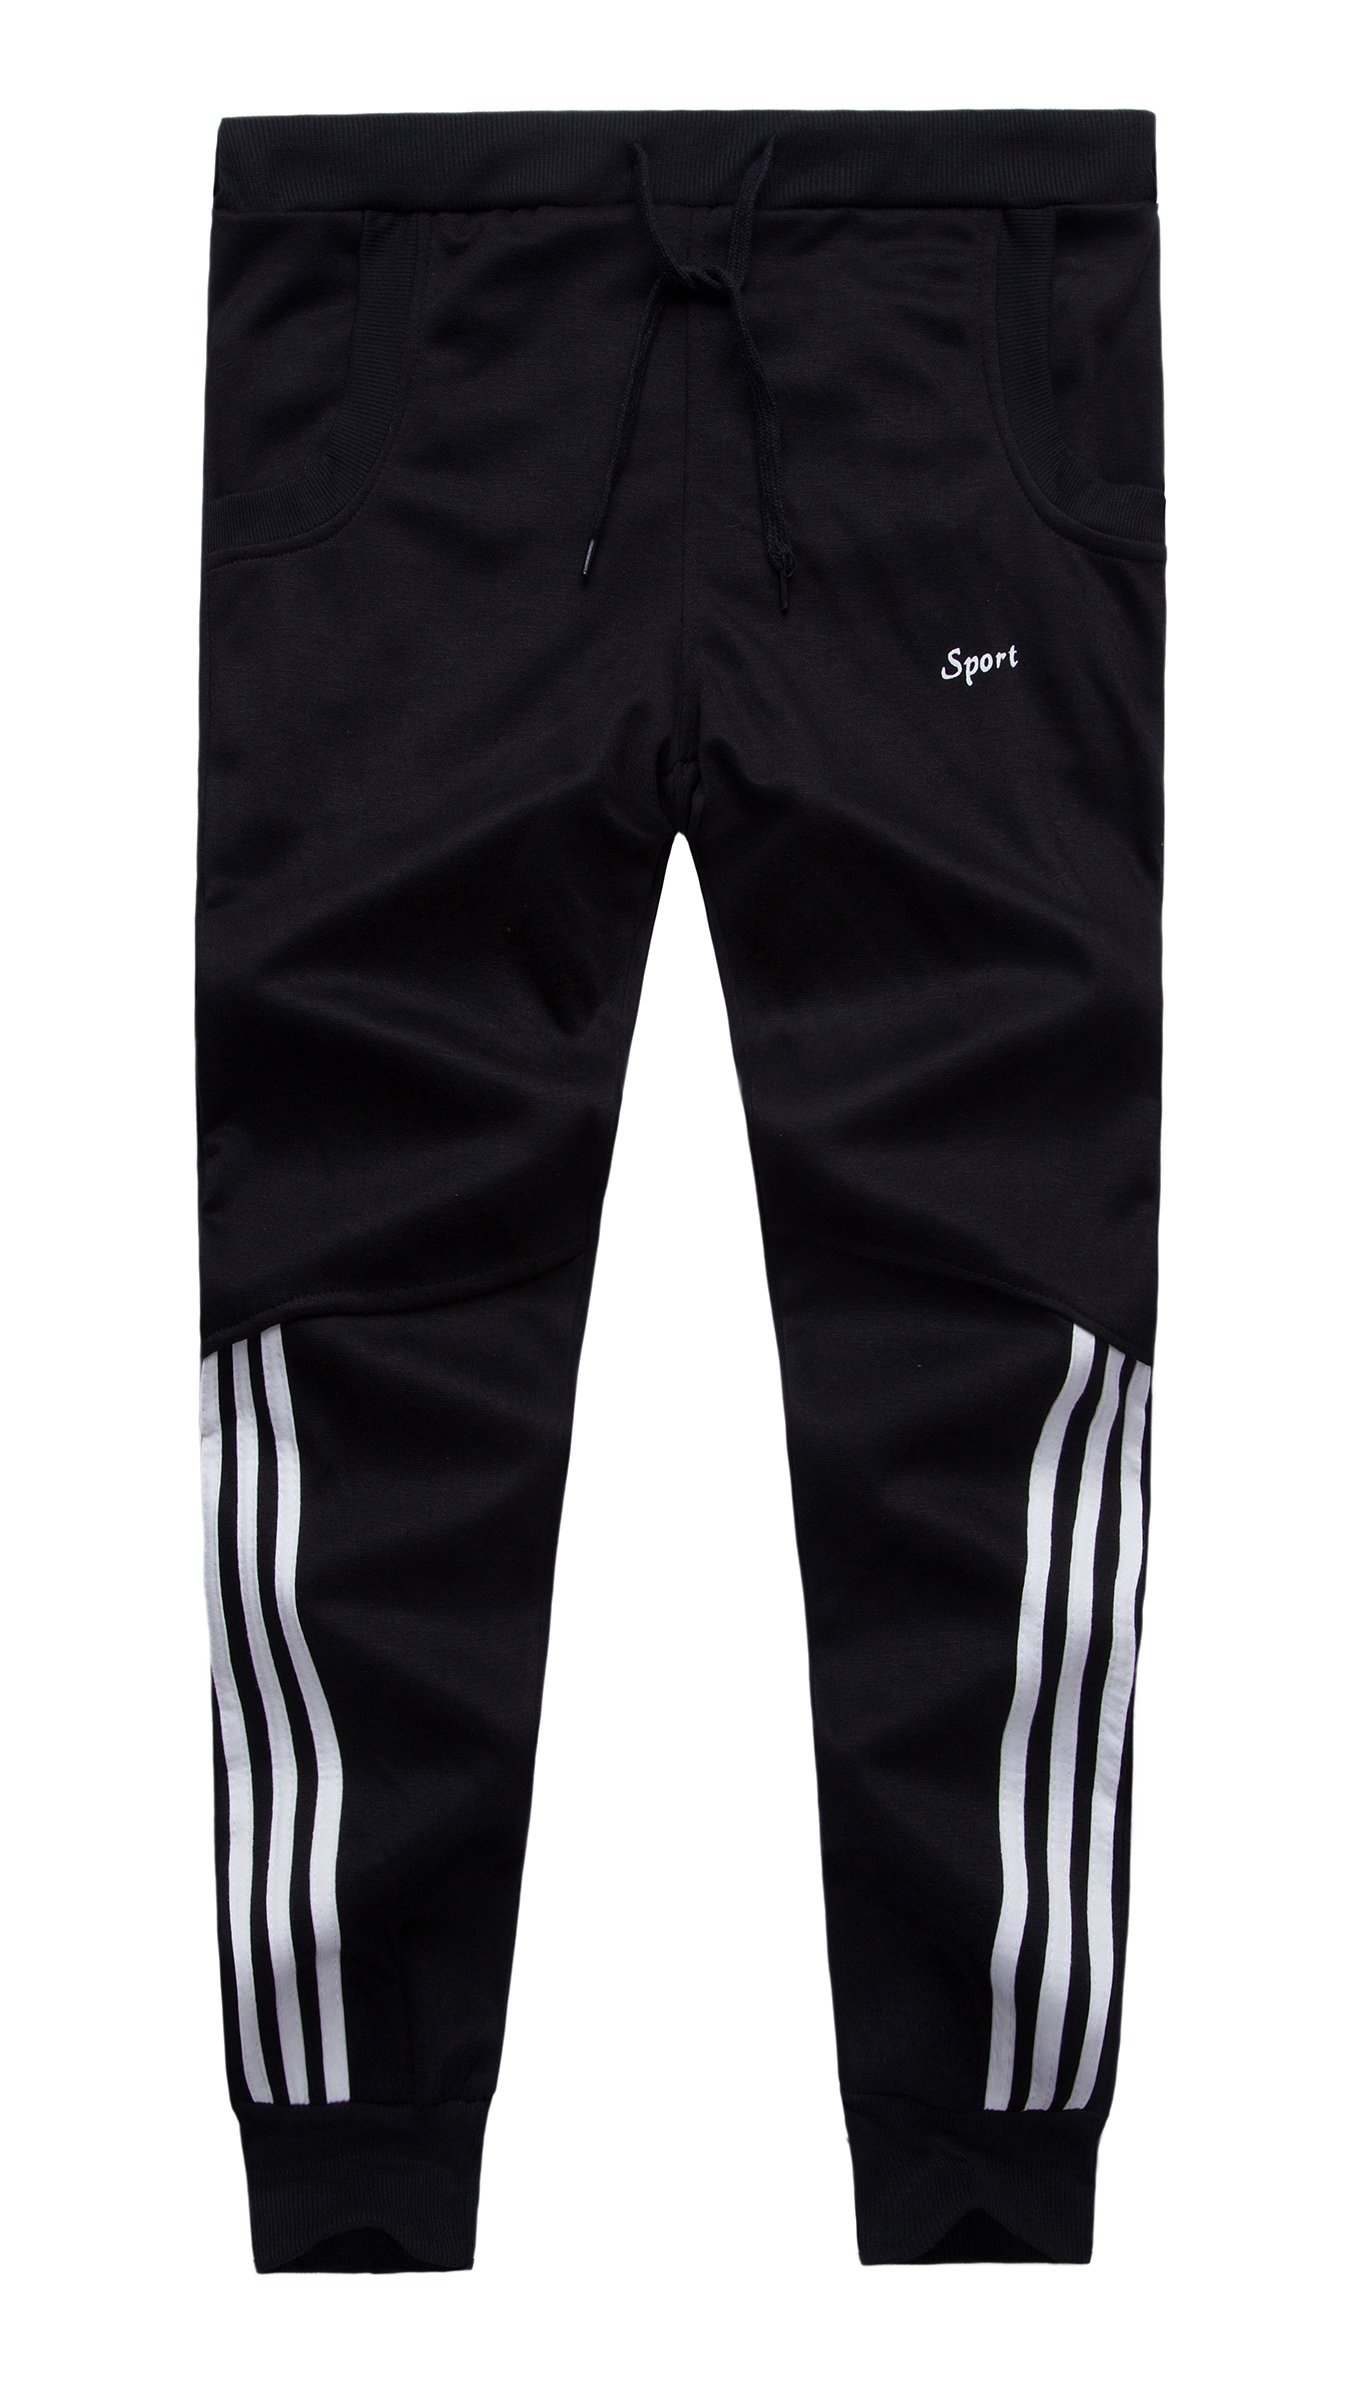 Grimgrow Boy's Pull On Basic Jogger Pants Sport Running Shorts Trousers Black 6